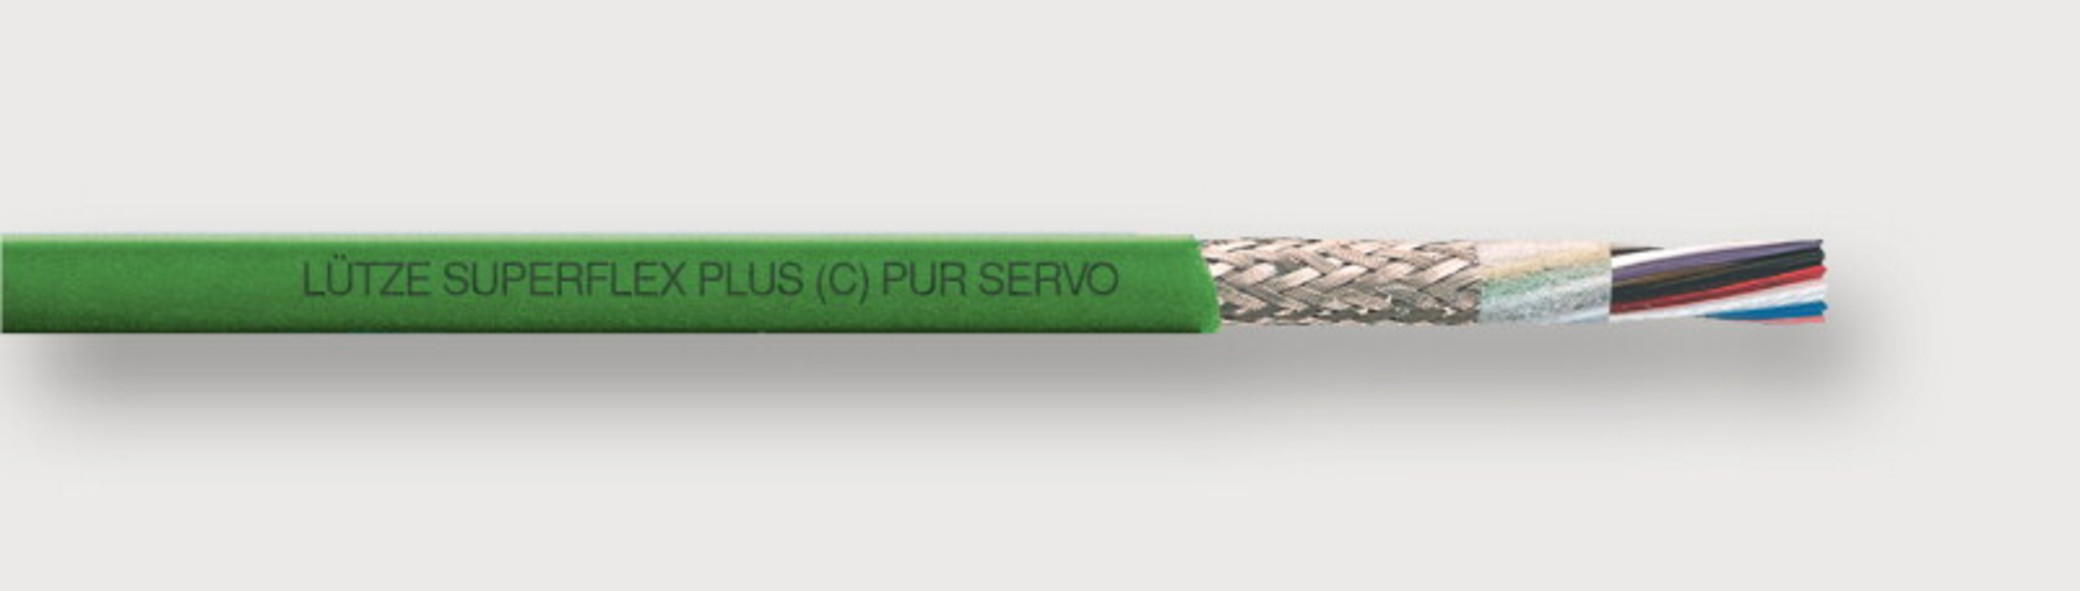 111488 - LÜTZE SUPERFLEX® PLUS (C) PUR FEEDBACK Feedback cables for Allen-Bradley and other systems For highest requirements in drive technology